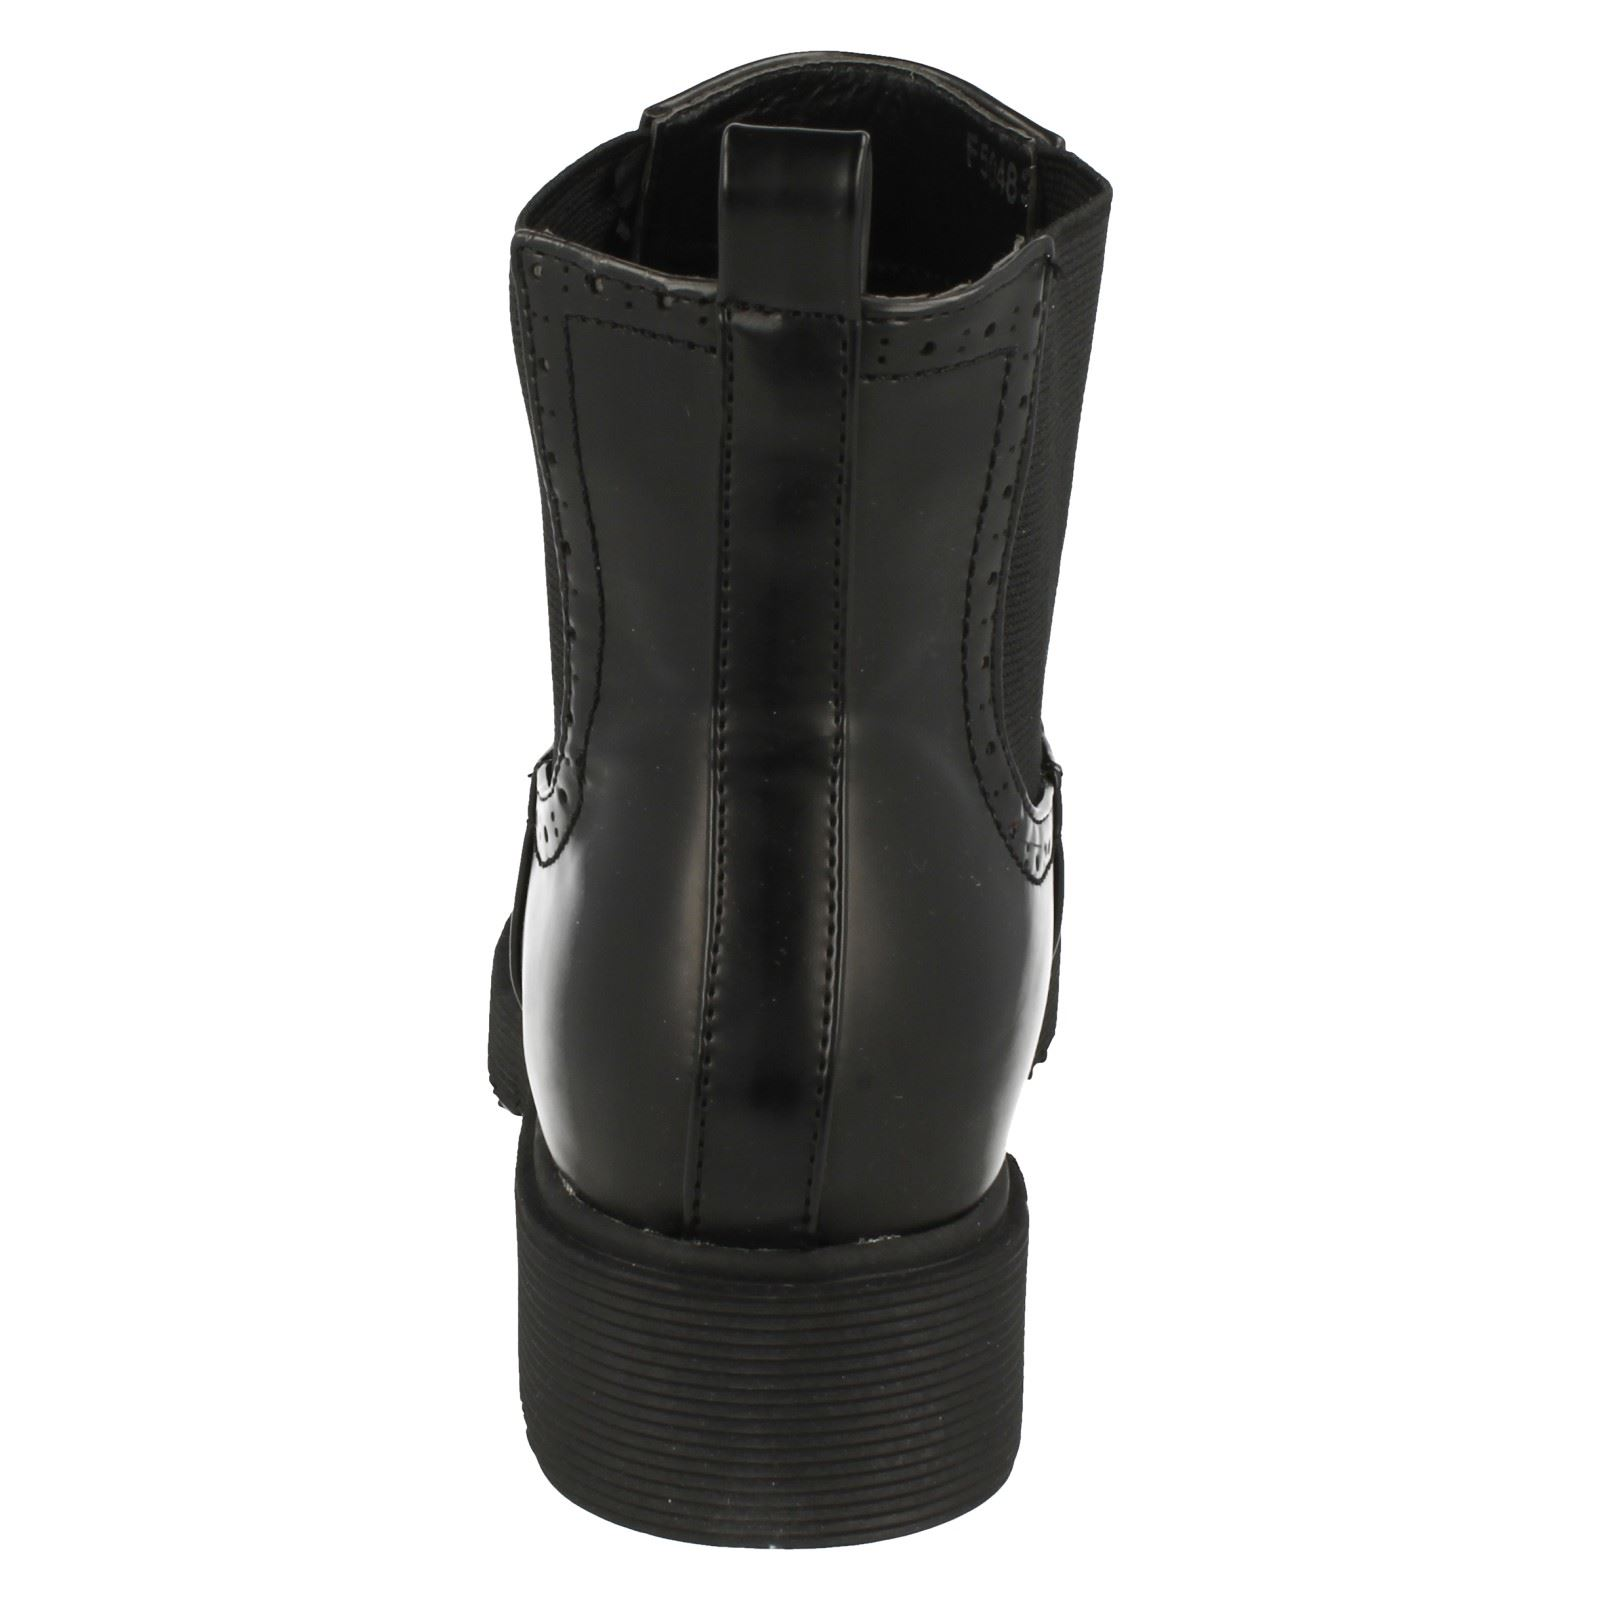 Explore our latest range of women's boots. Whether you are searching for the must have style or a staple classic, an on-trend over the knee or an easy ankle boot - Dune London will help find your perfect boot. Ladies Ladies Boots Ladies Shoes Ladies Sandals Bags and Accessories Shop by Trend.